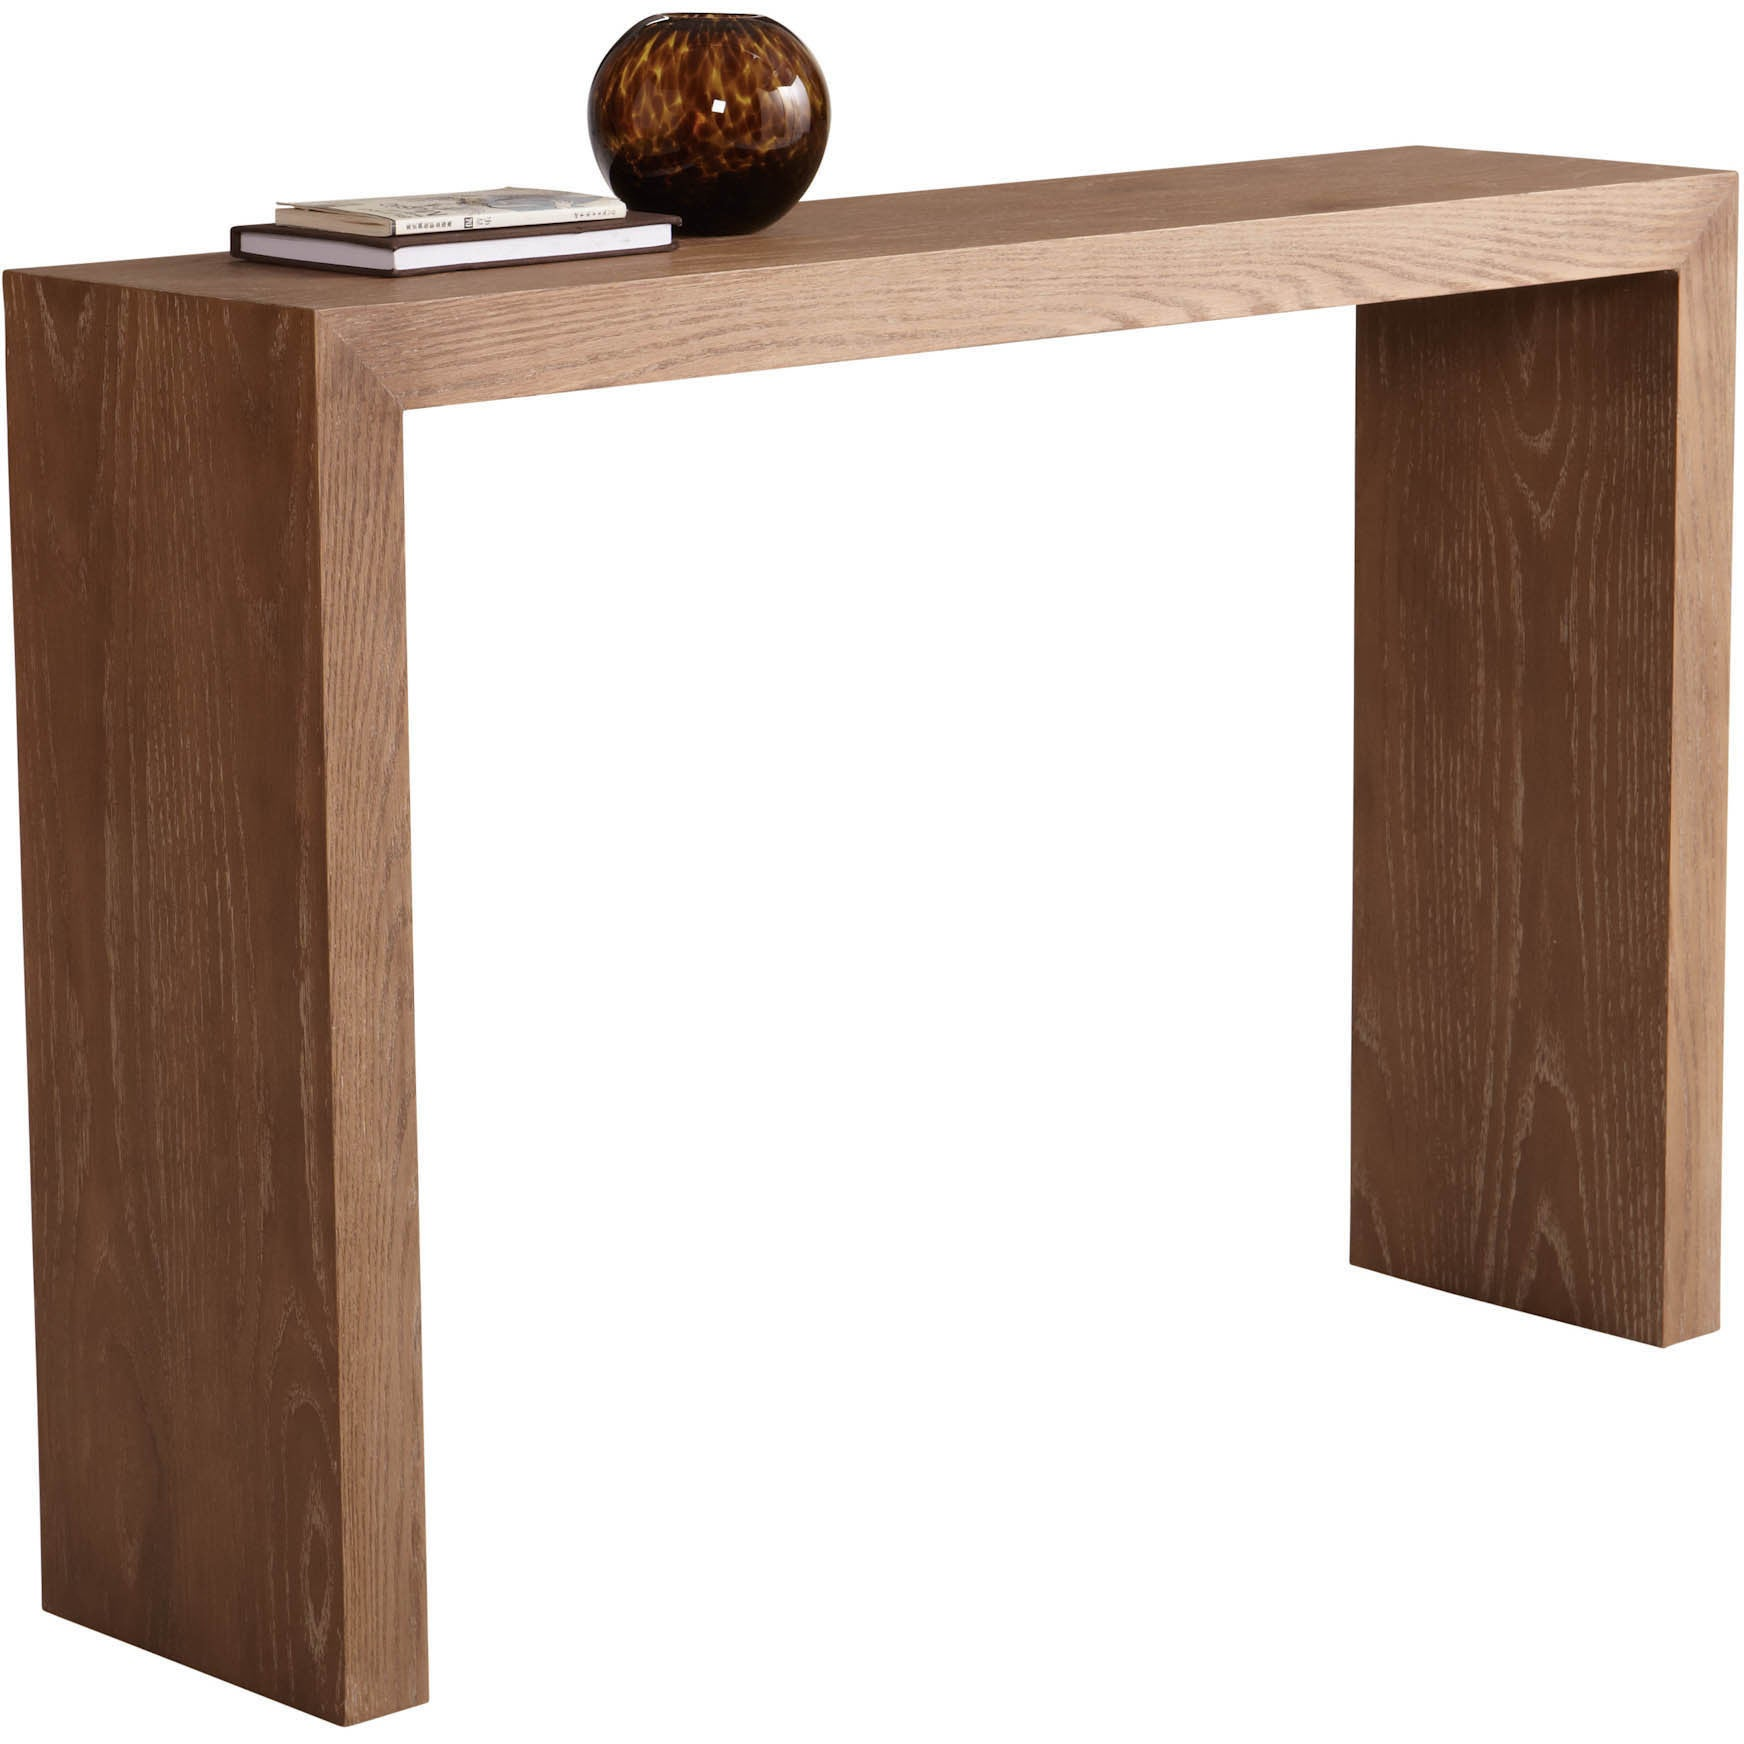 Sunpan ikon arch contemporary wood console table ebay sunpan 039 ikon 039 arch contemporary wood console geotapseo Image collections